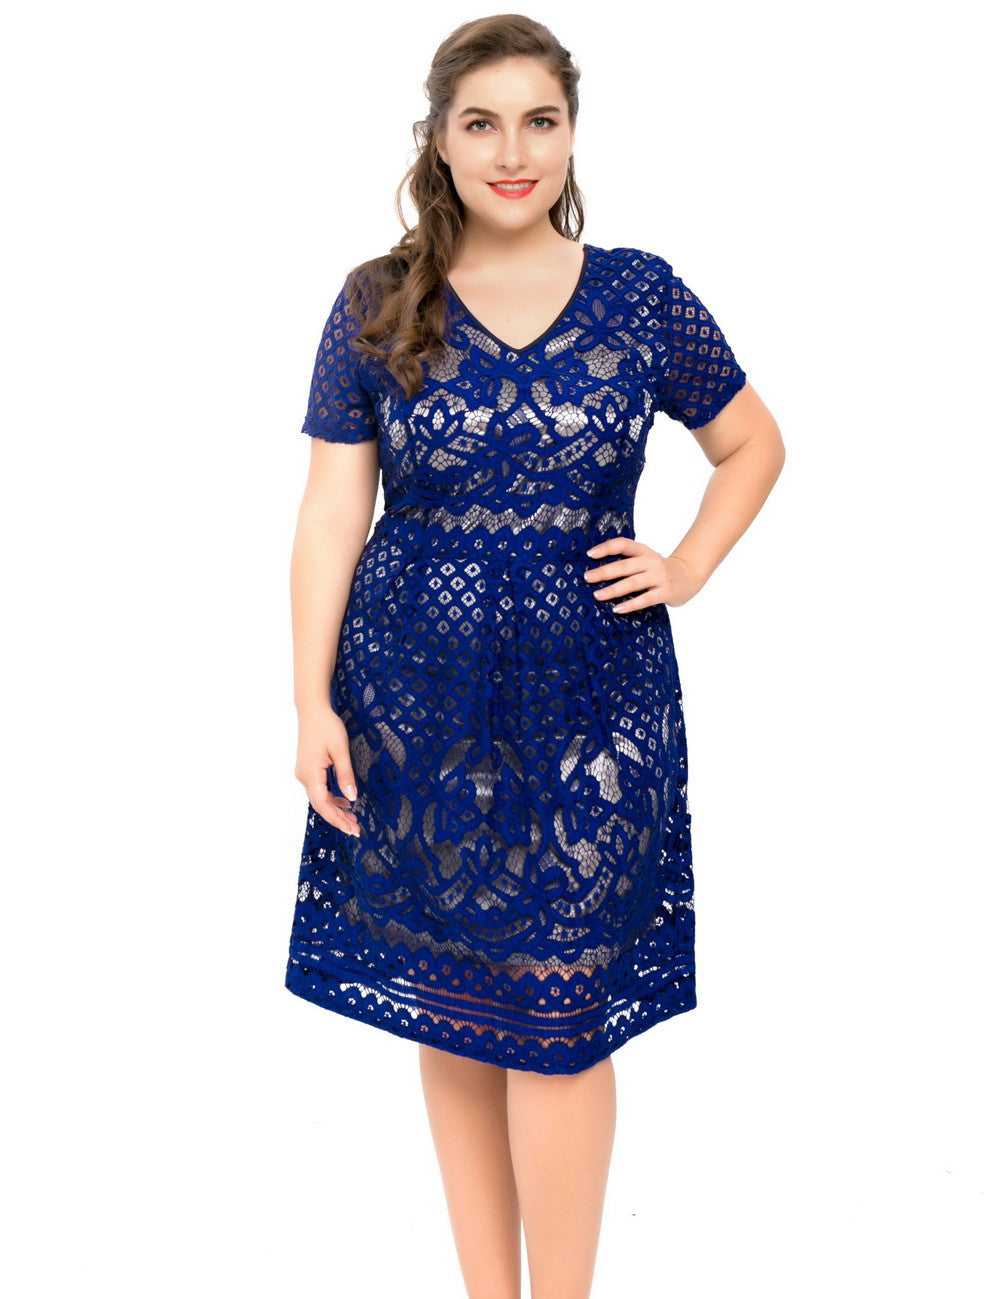 Chicwe Women's Lined Plus Size Floral Lace Skater Dress Full Figured Decorative 1X-4X